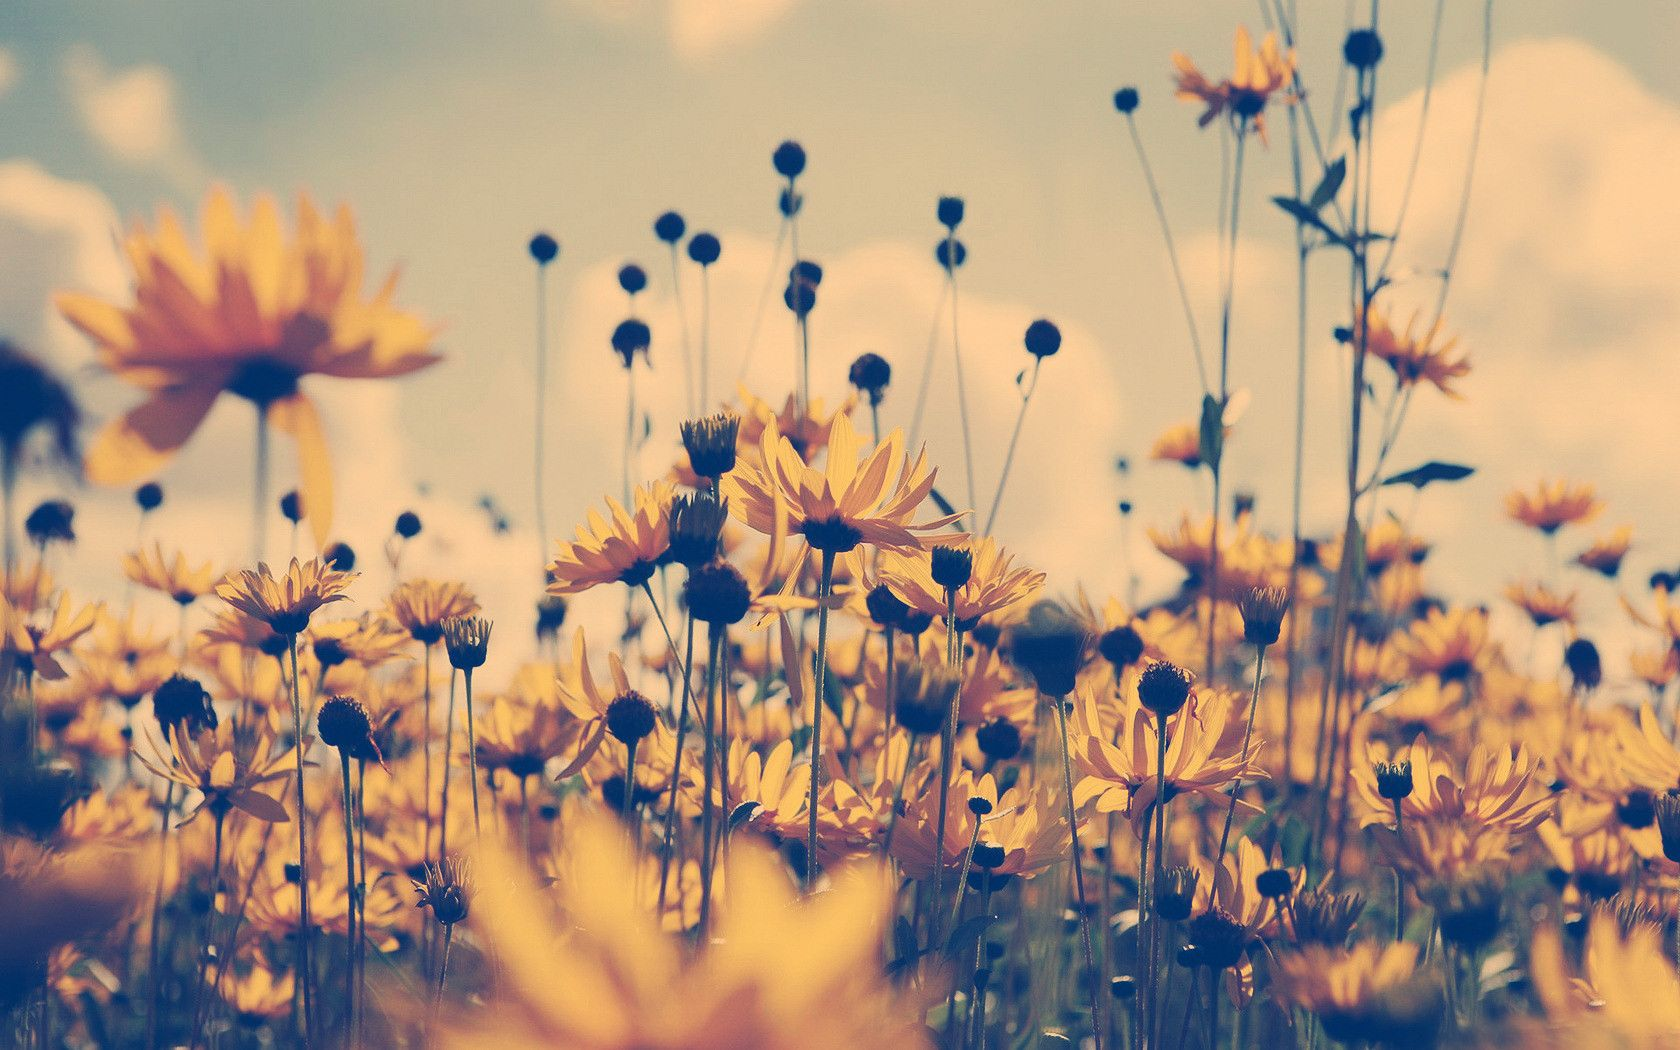 Vintage Sunflower HD Wallpaper